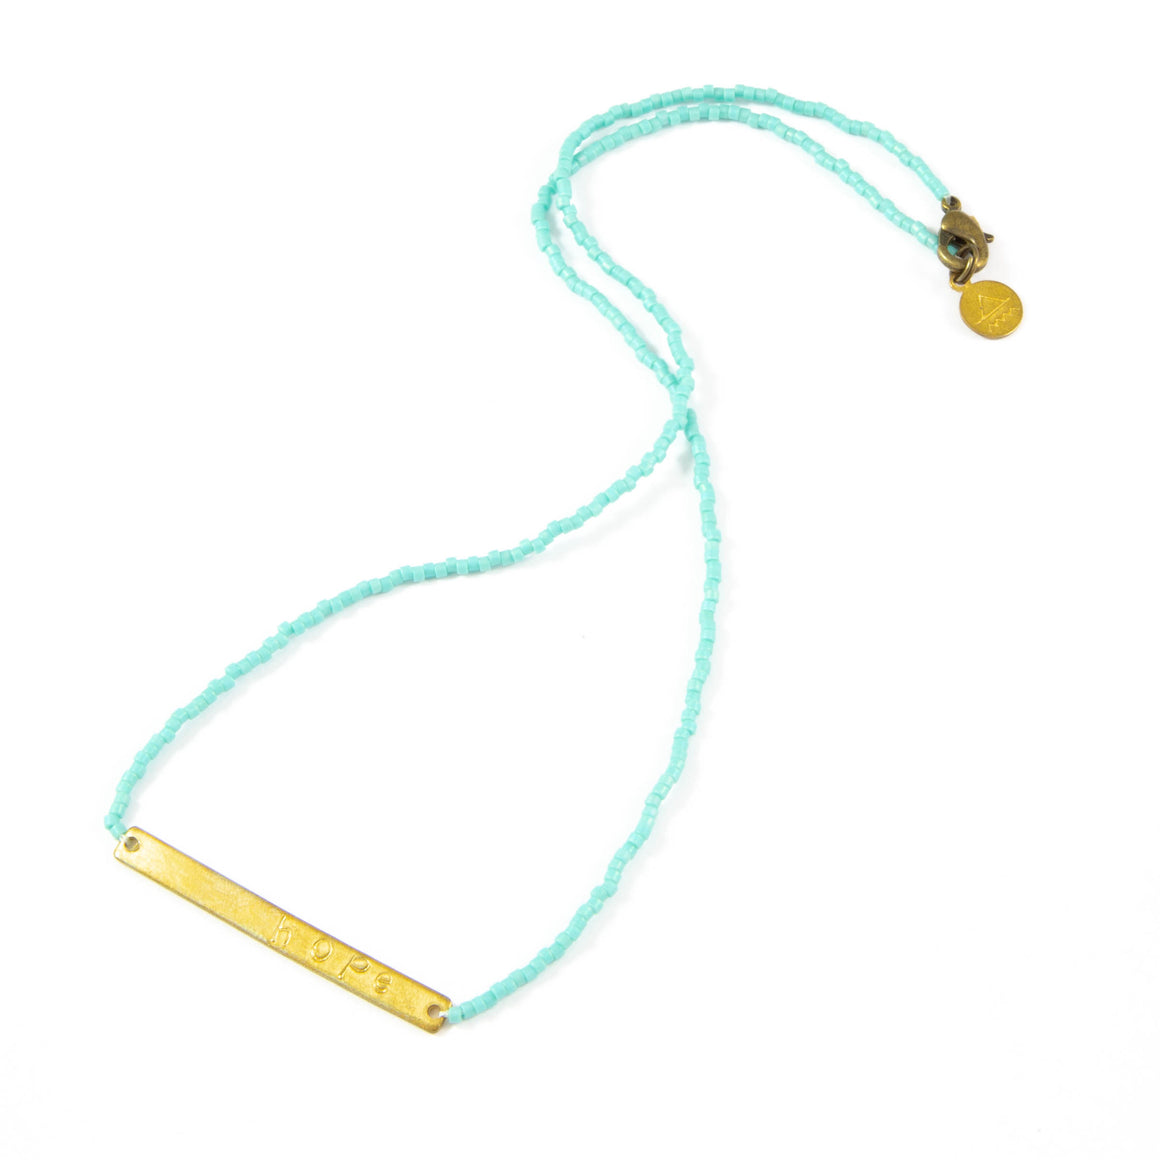 Teal HOPE Necklace